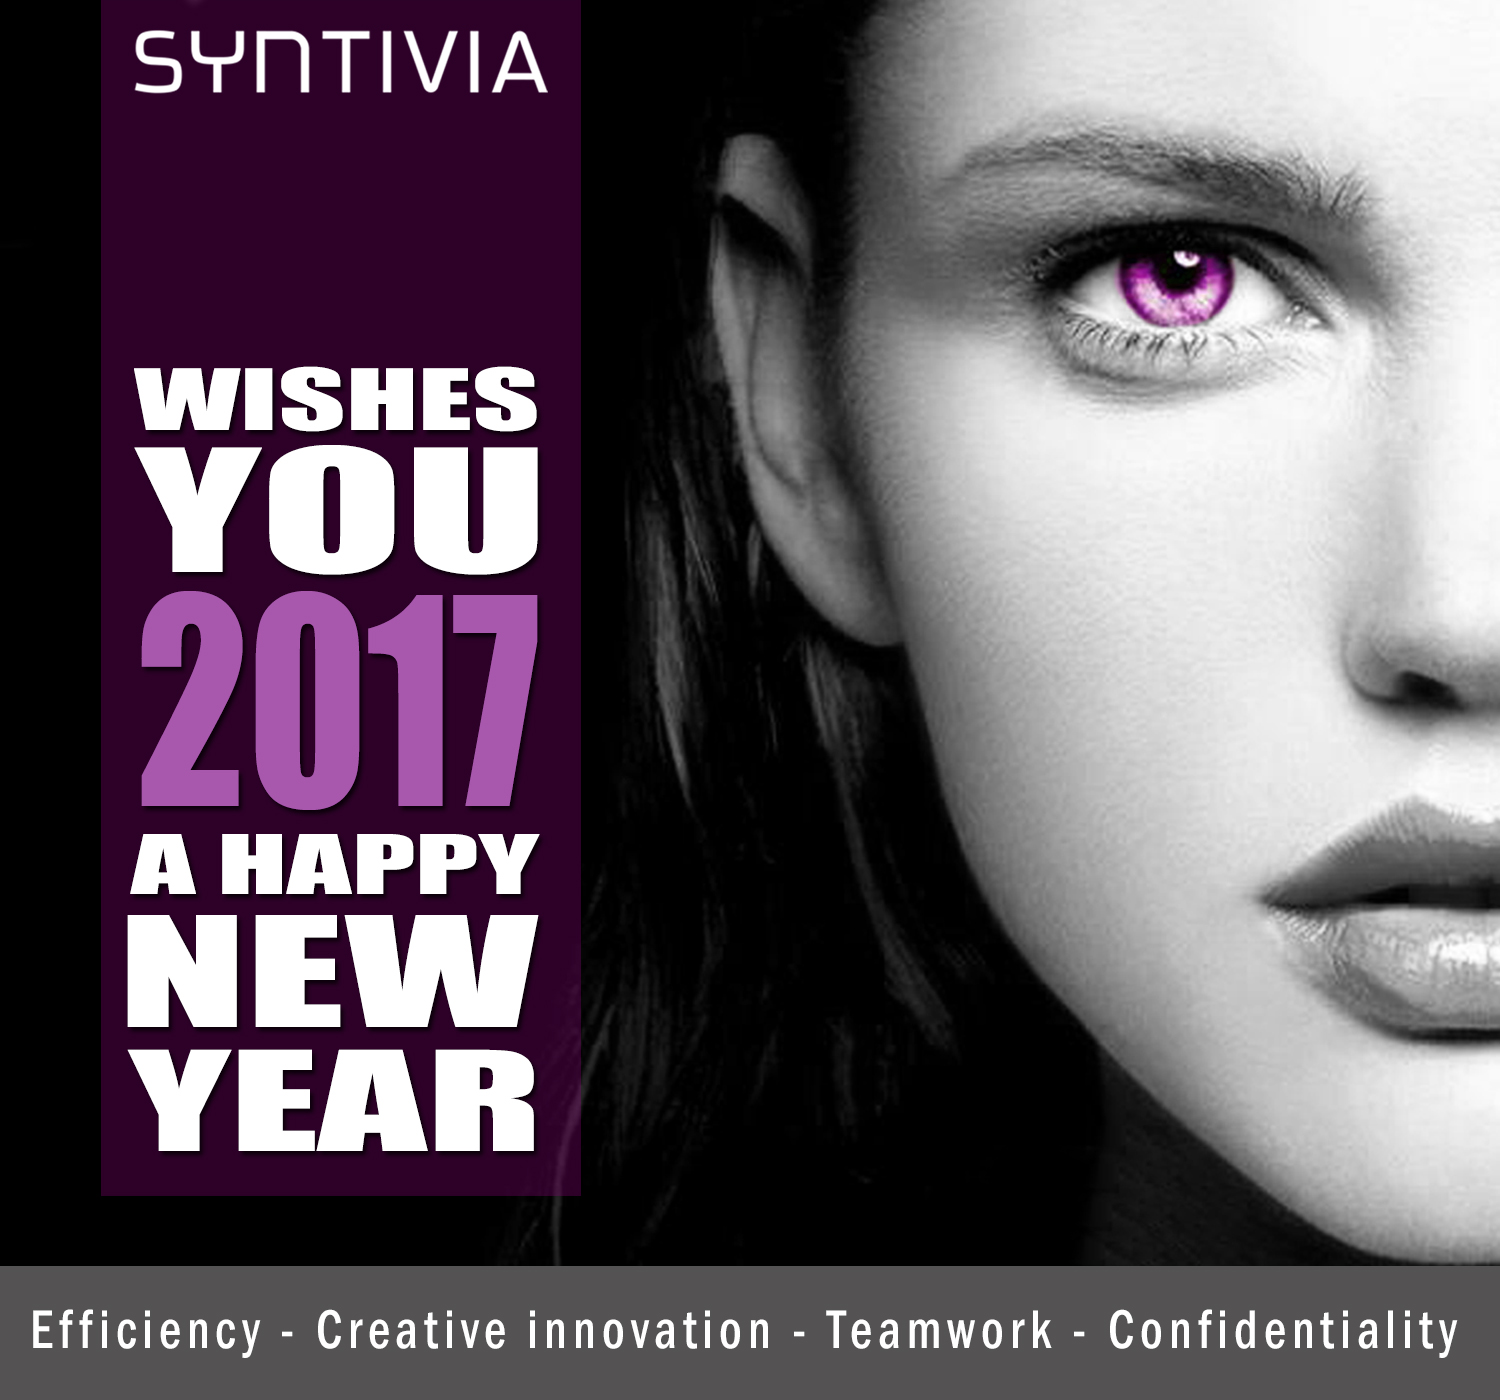 Happy New Year 2017 Wishes: Syntivia Wishes You A Happy New Year 2017